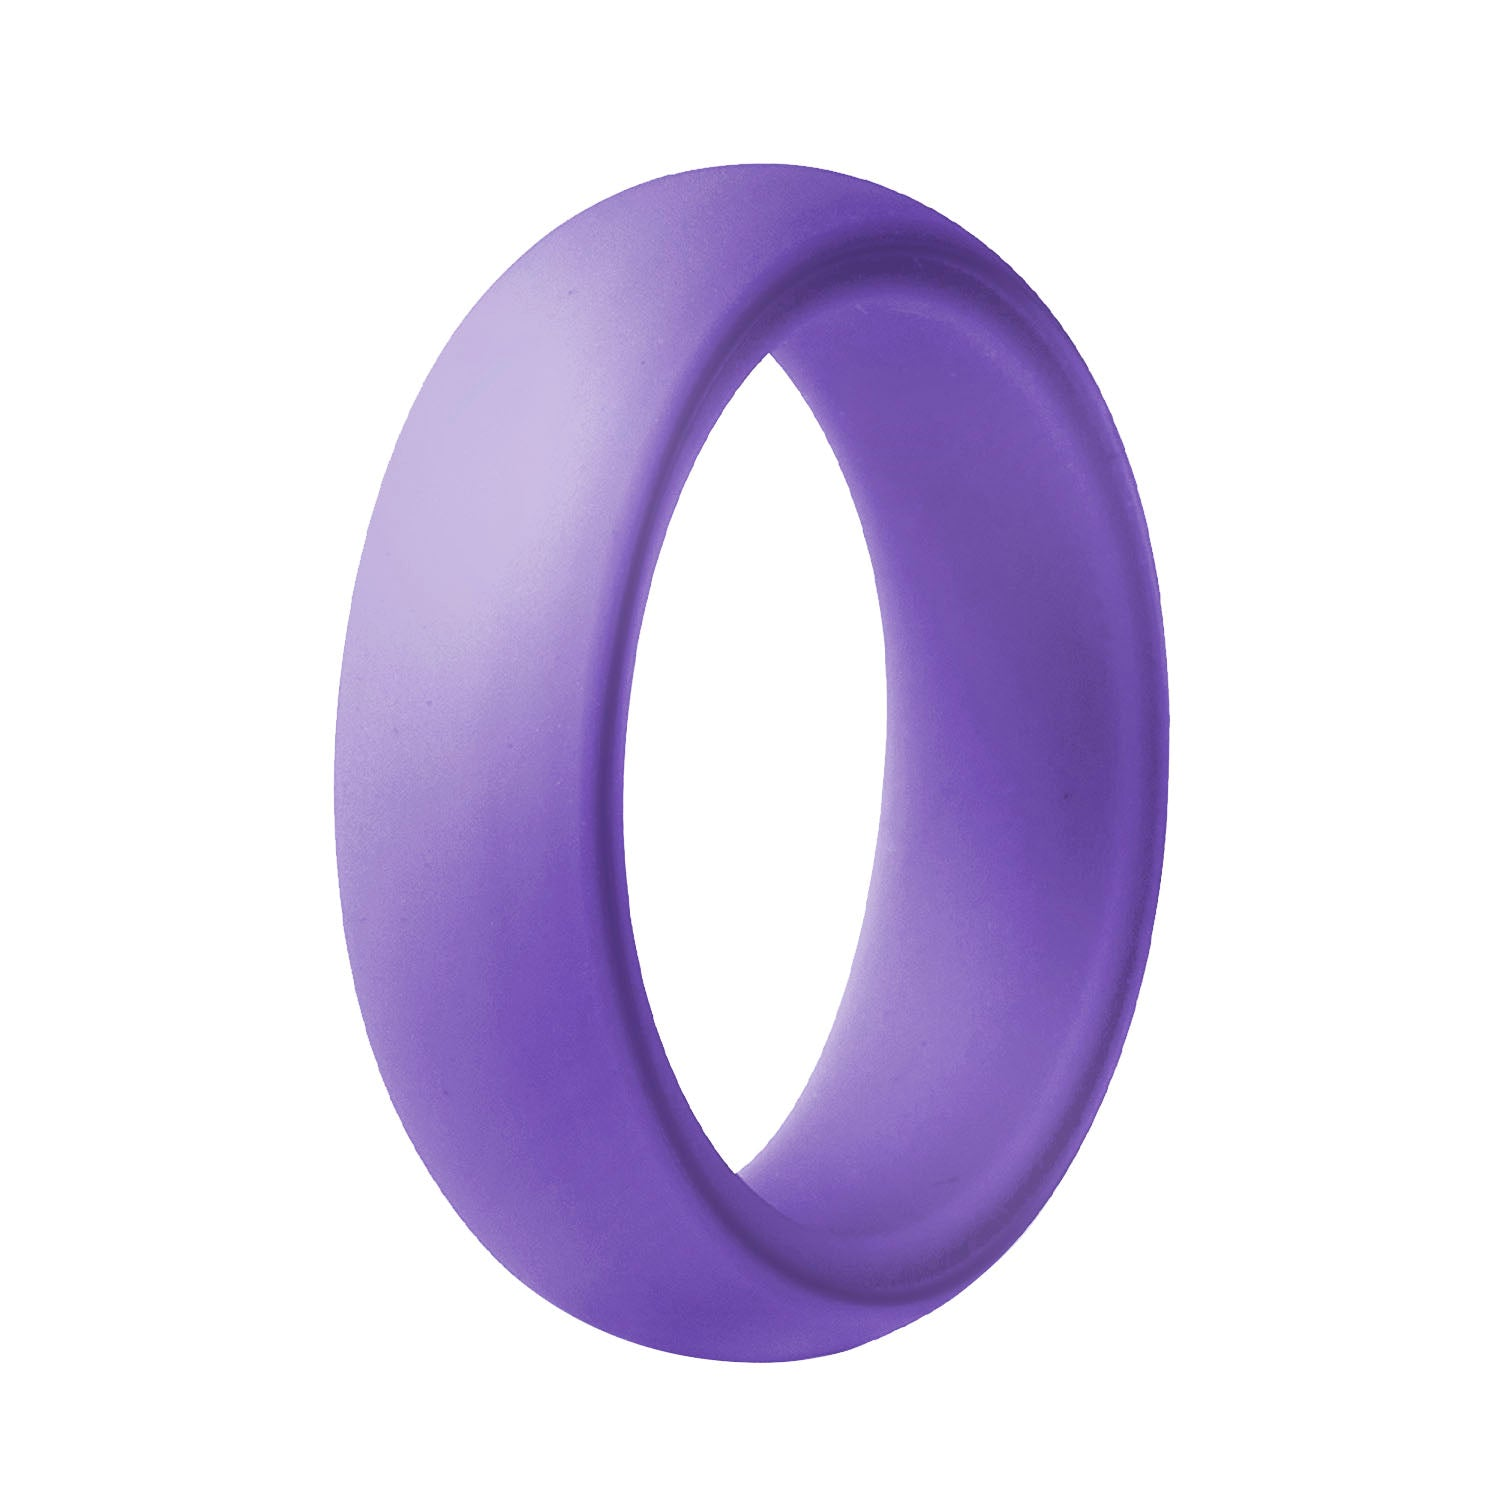 Women's Classic Silicone Ring - Purple